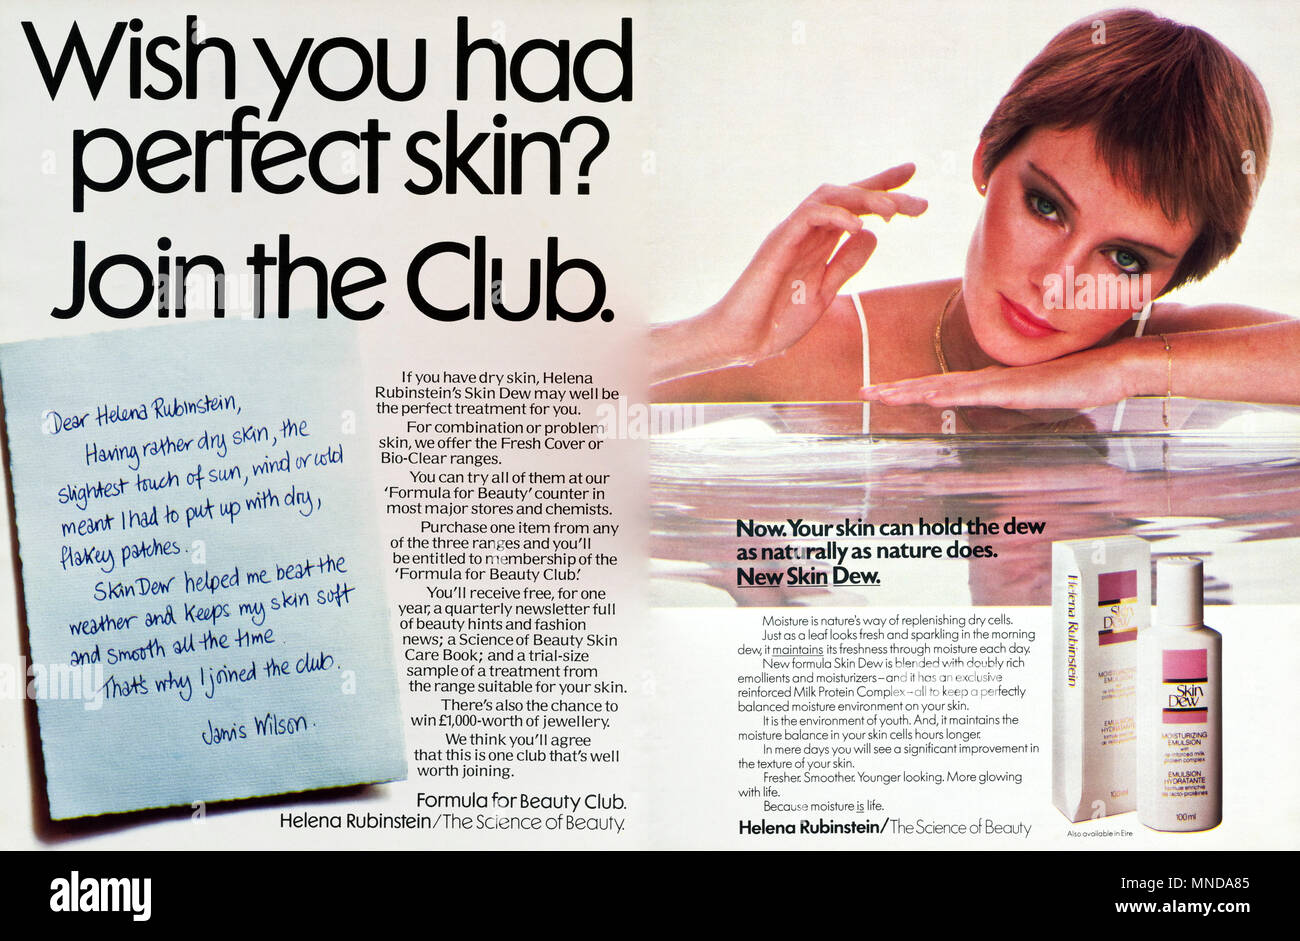 1980s original old vintage advertisement advertising Skin Dew cosmetics by Helena Rubinstein for women advert in English magazine circa 1980 - Stock Image